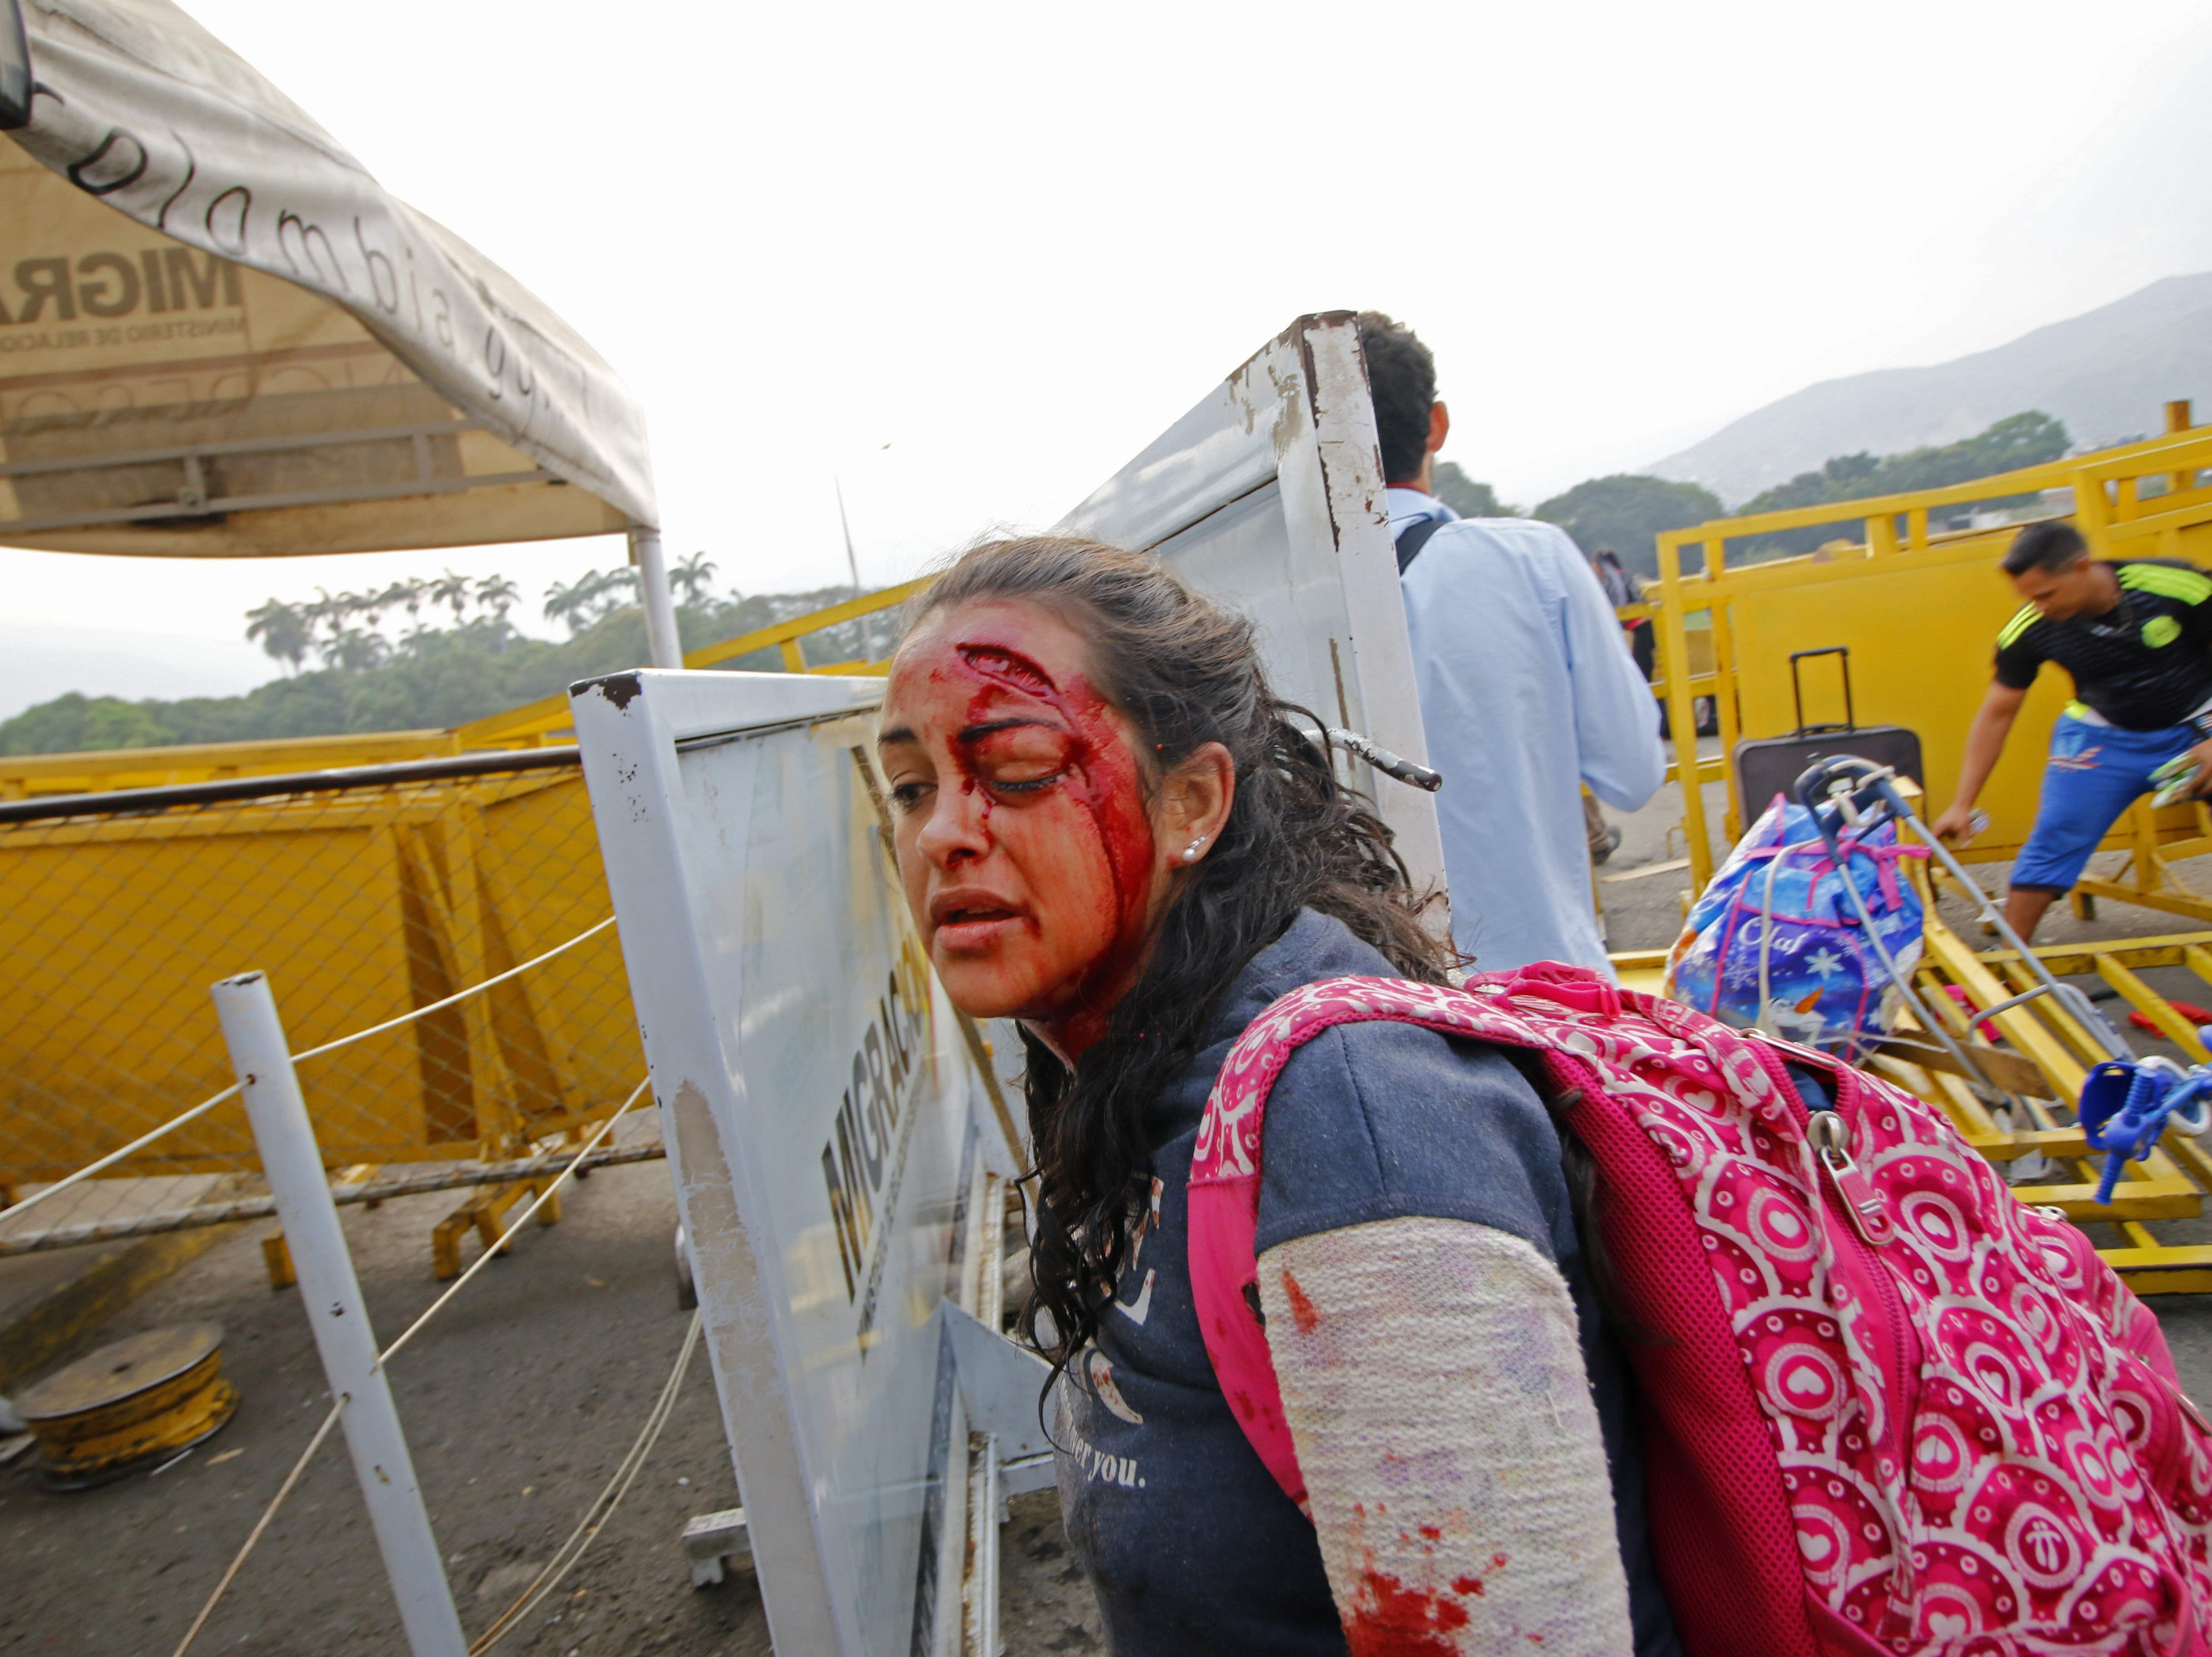 A woman walks after being injured when two Venezuelan armored vehicles drove from the Venezuelan side of Simon Bolivar International Bridge into Colombia, knocking down a security fence in Cucuta, on Feb. 23, 2019. Venezuela braced for a showdown between the military and regime opponents at the Colombian border on Saturday, when self-declared acting president Juan Guaido has vowed humanitarian aid would enter his country despite a blockade.